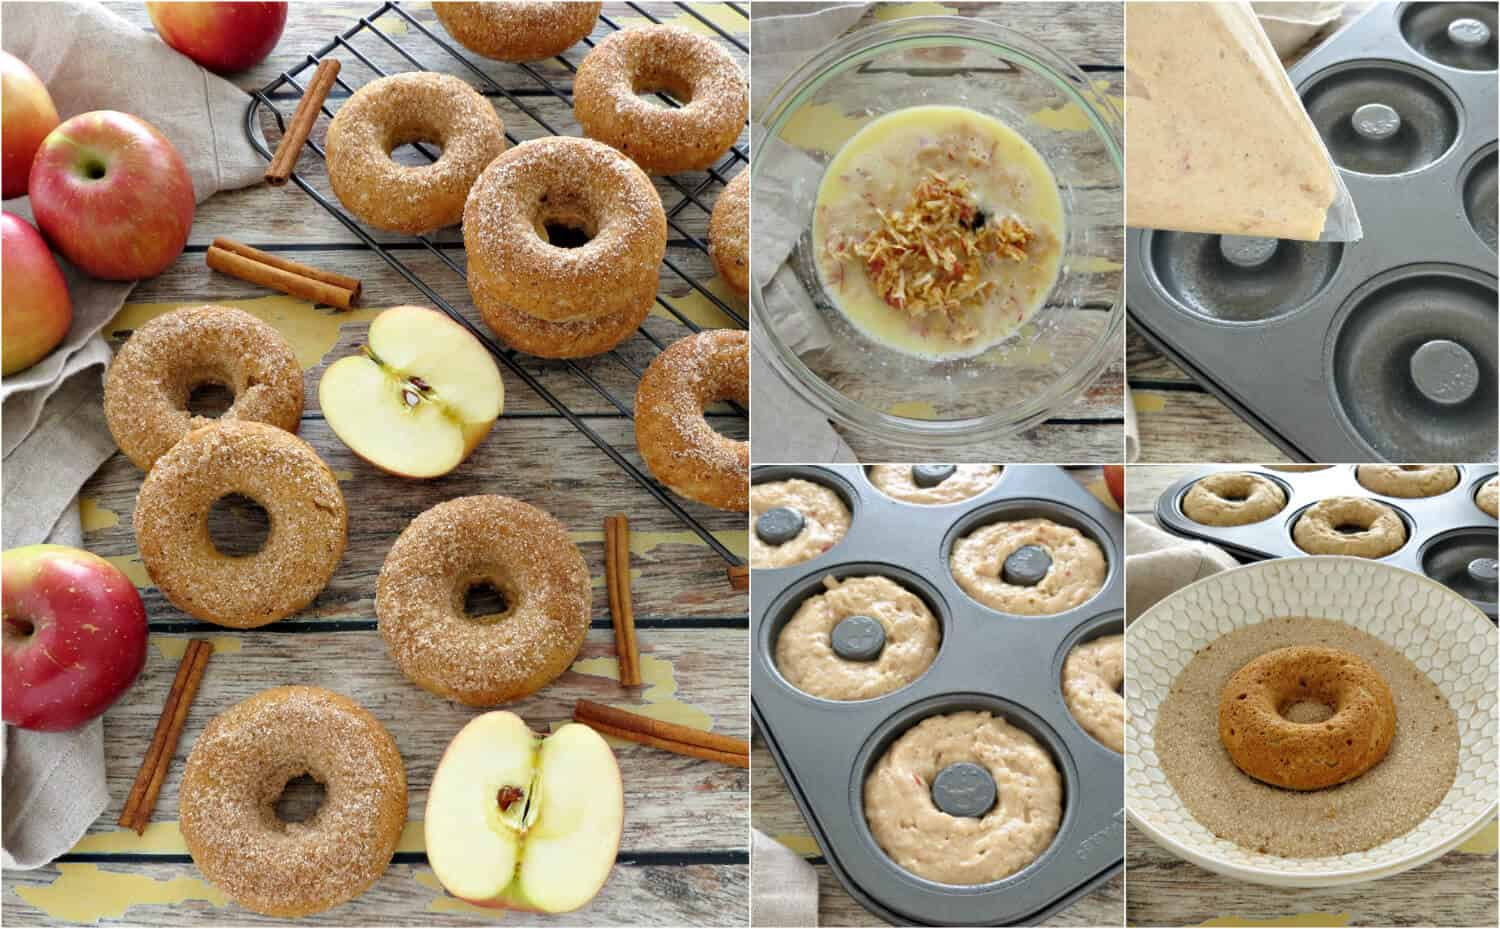 Apple Cinnamon Baked Donuts Recipe